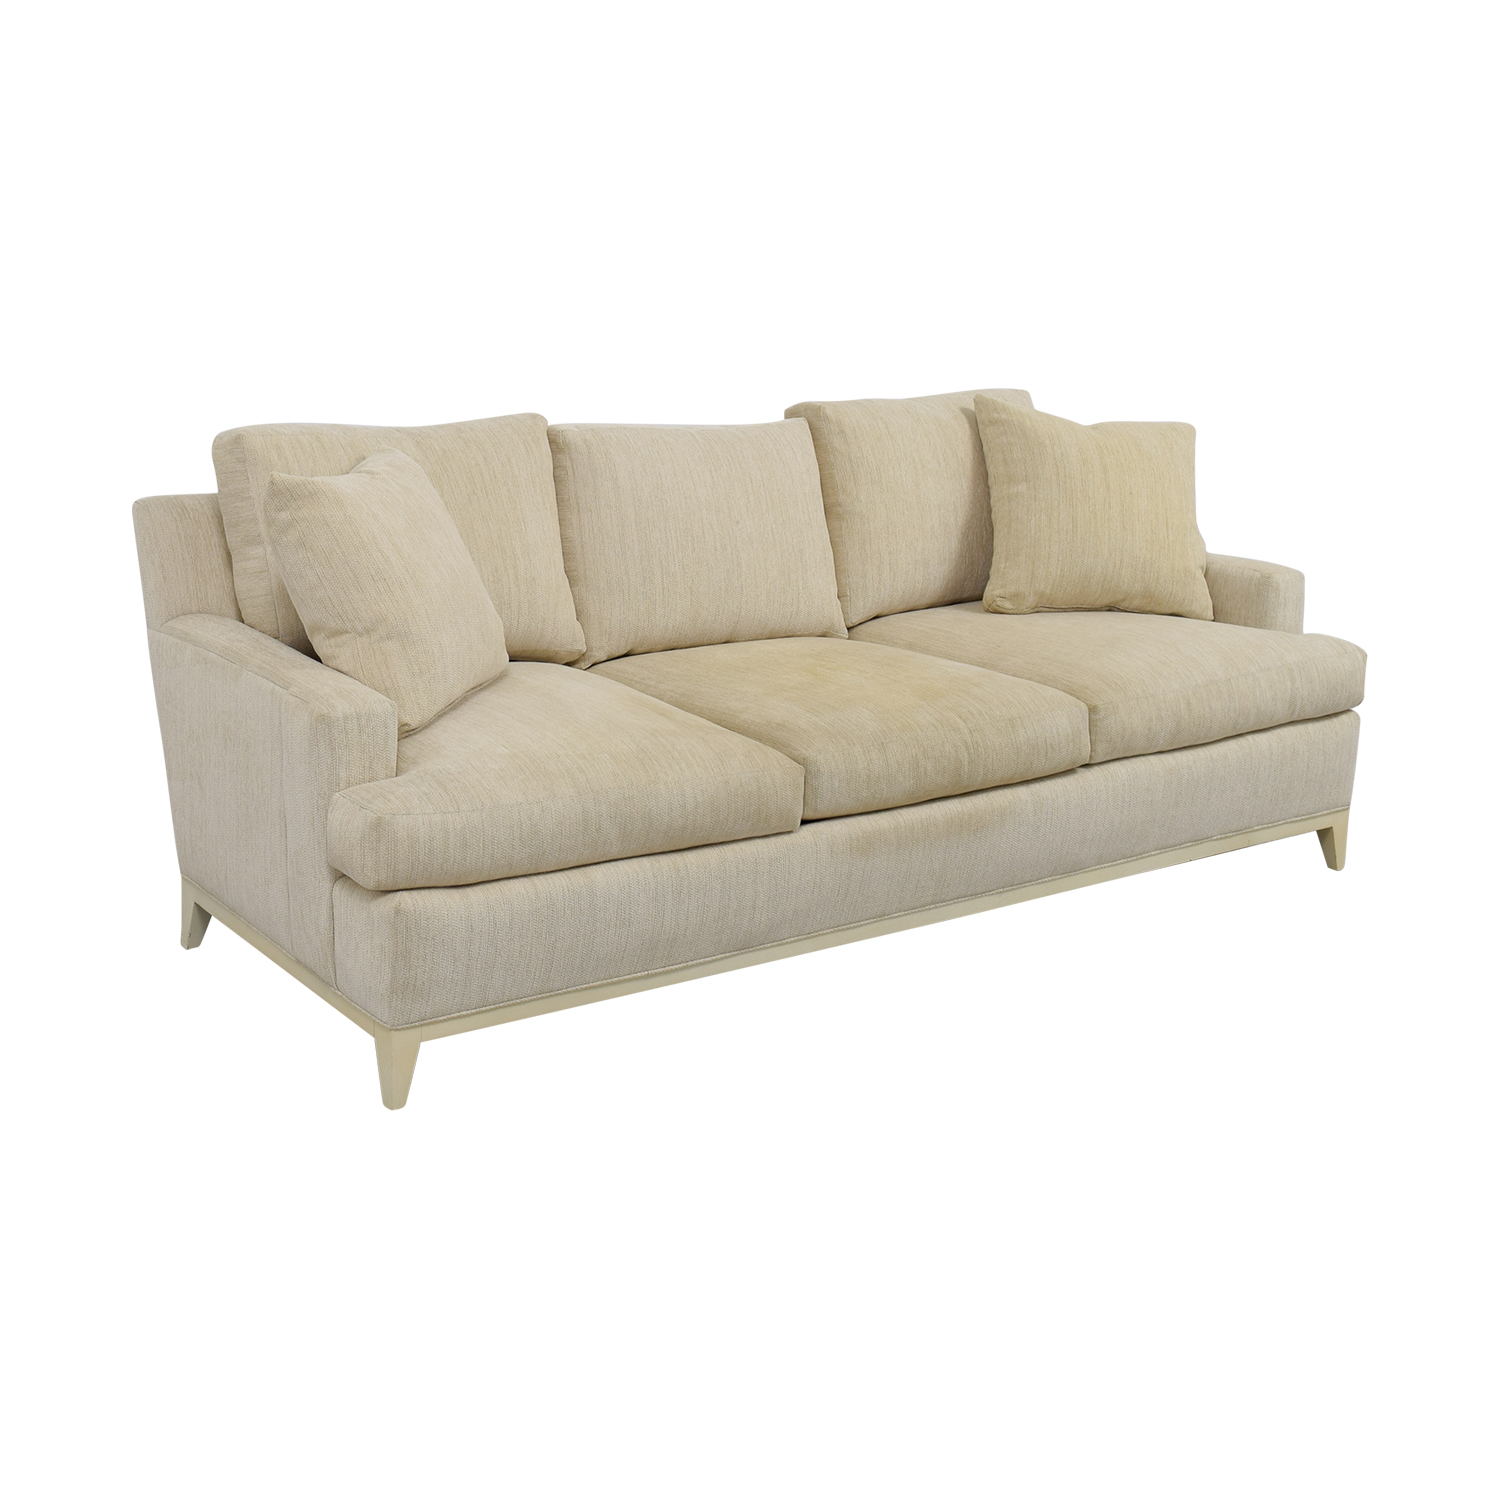 51% OFF Hickory Chair Hickory Chair 9th Street Sofa Sofas